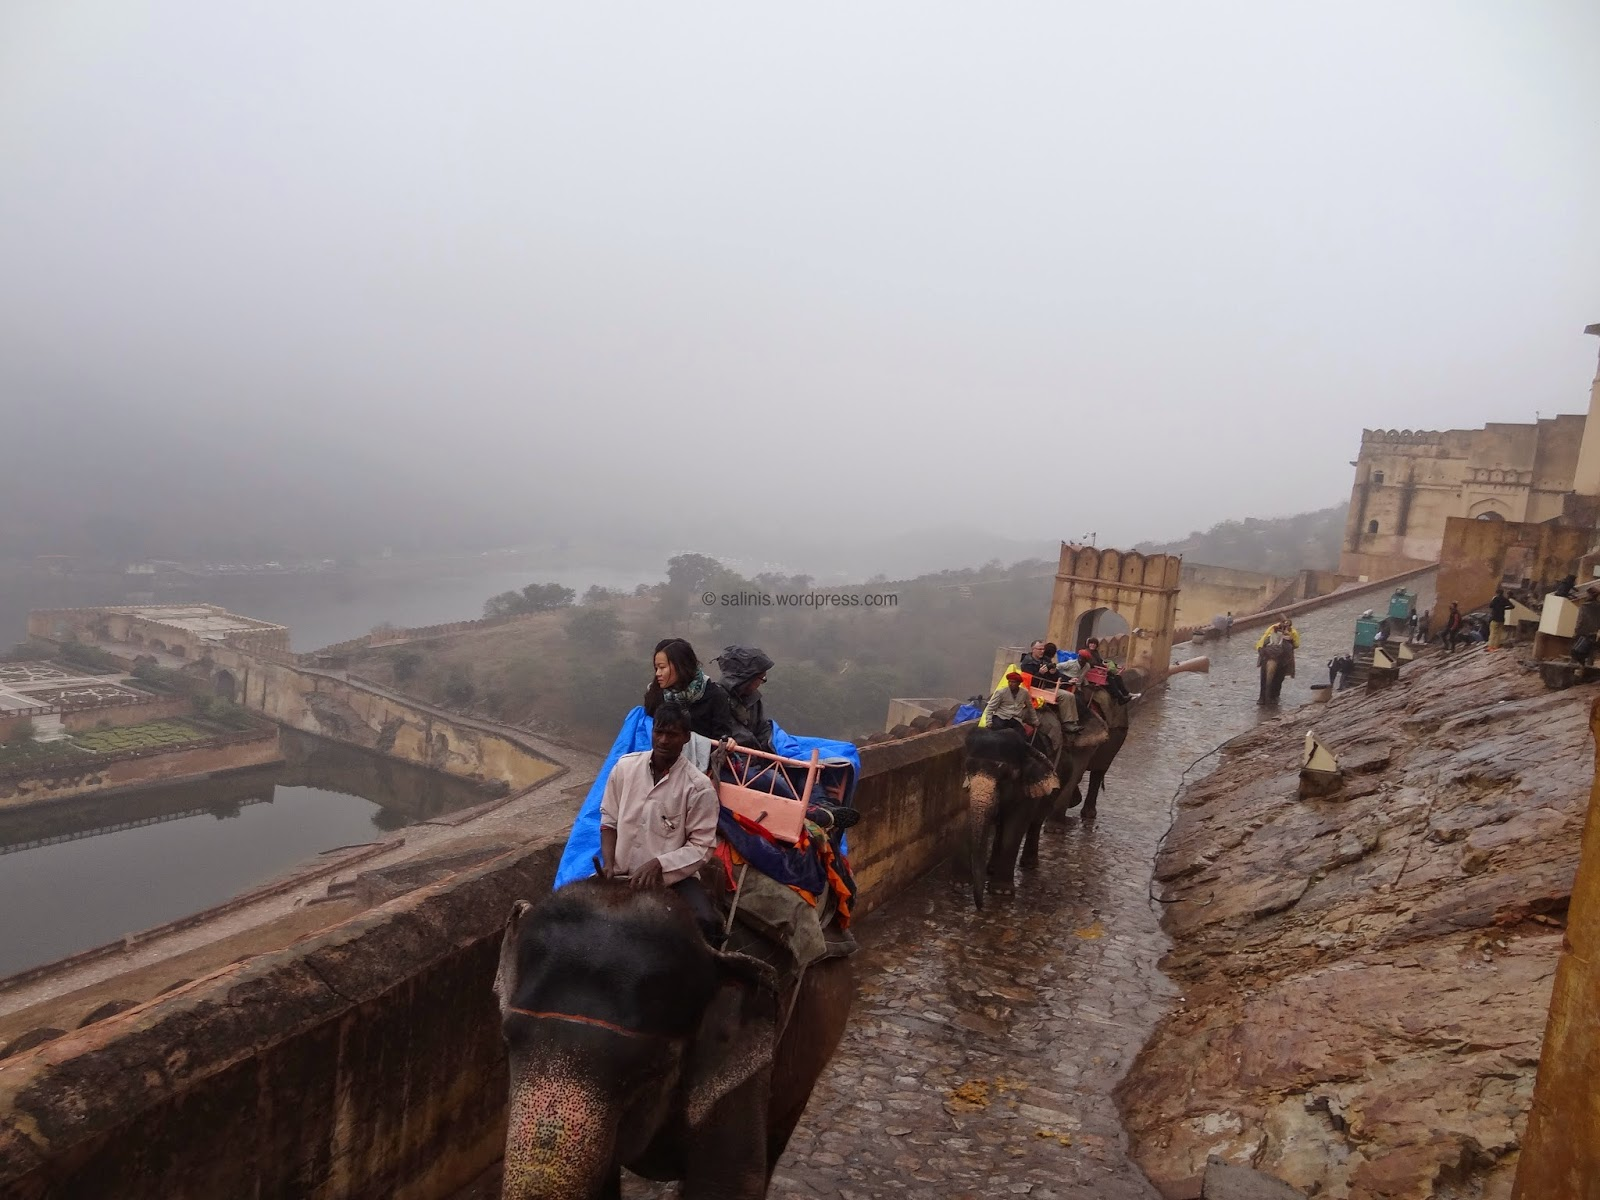 Elelphant ride in  Amber fort - Rajasthan India - Pick, Pack, Go